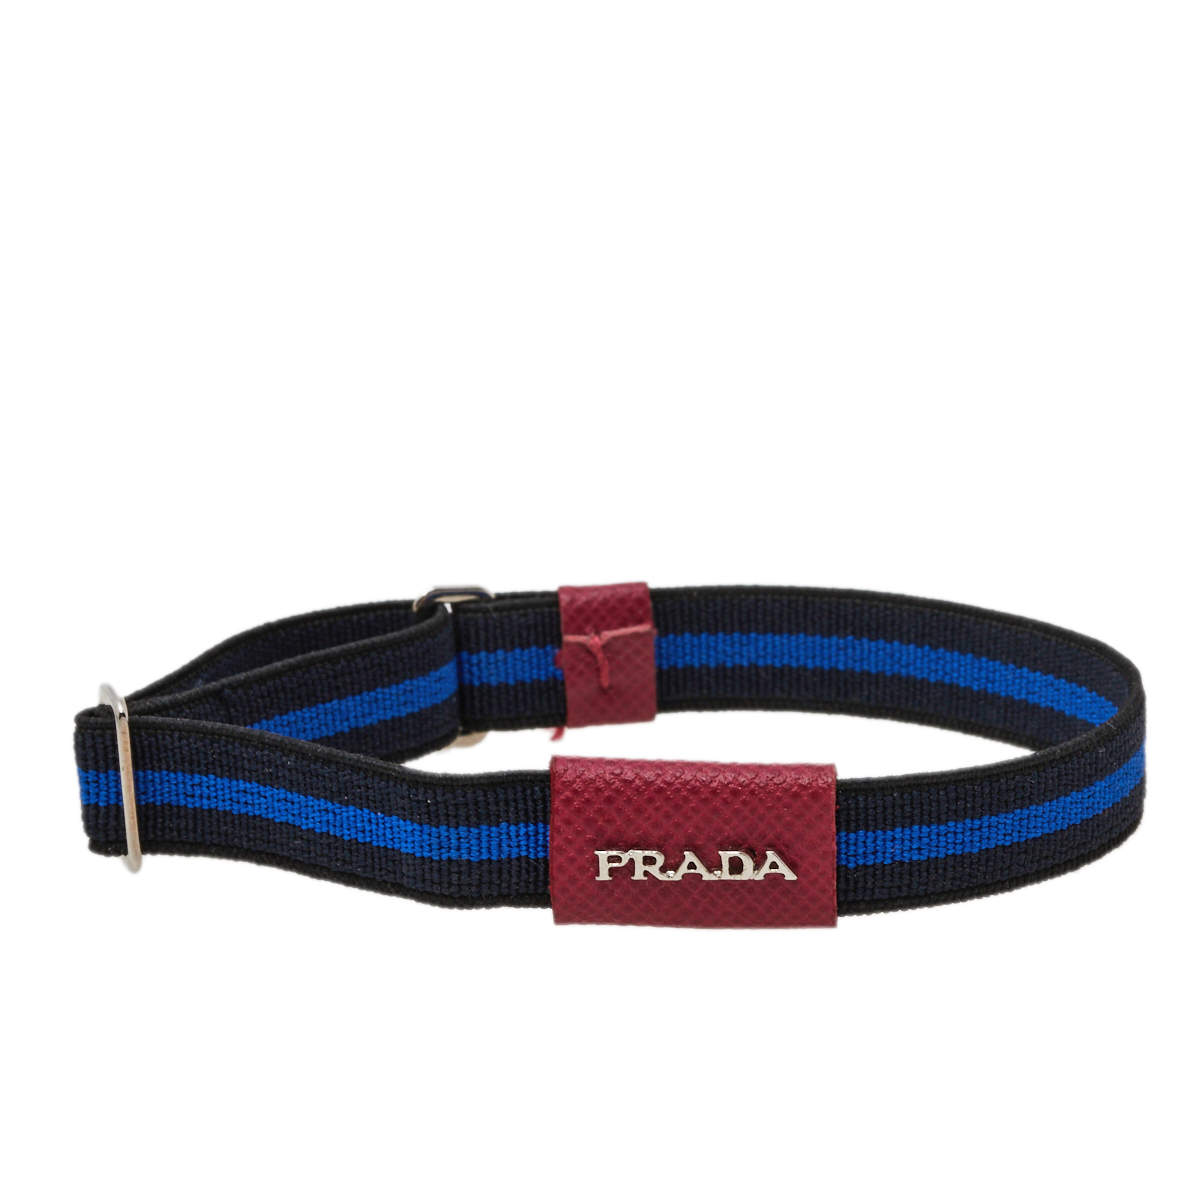 Prada Bicolor Striped Elasticized Adjustable Bracelet